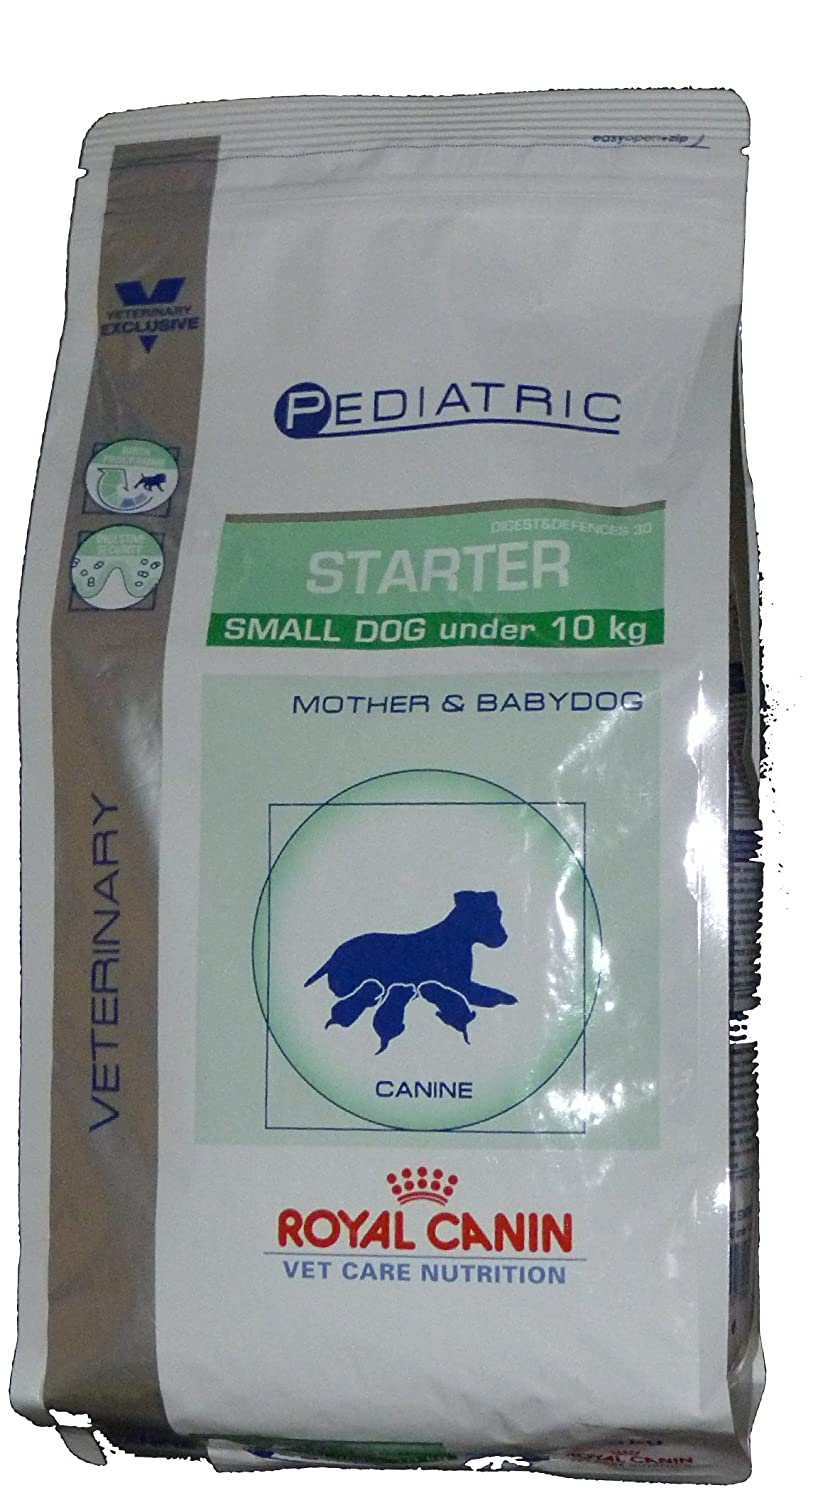 ROYAL CANIN C-112501 Pediatric Starter Mini Perros - 1.5 Kg: Amazon.es: Productos para mascotas